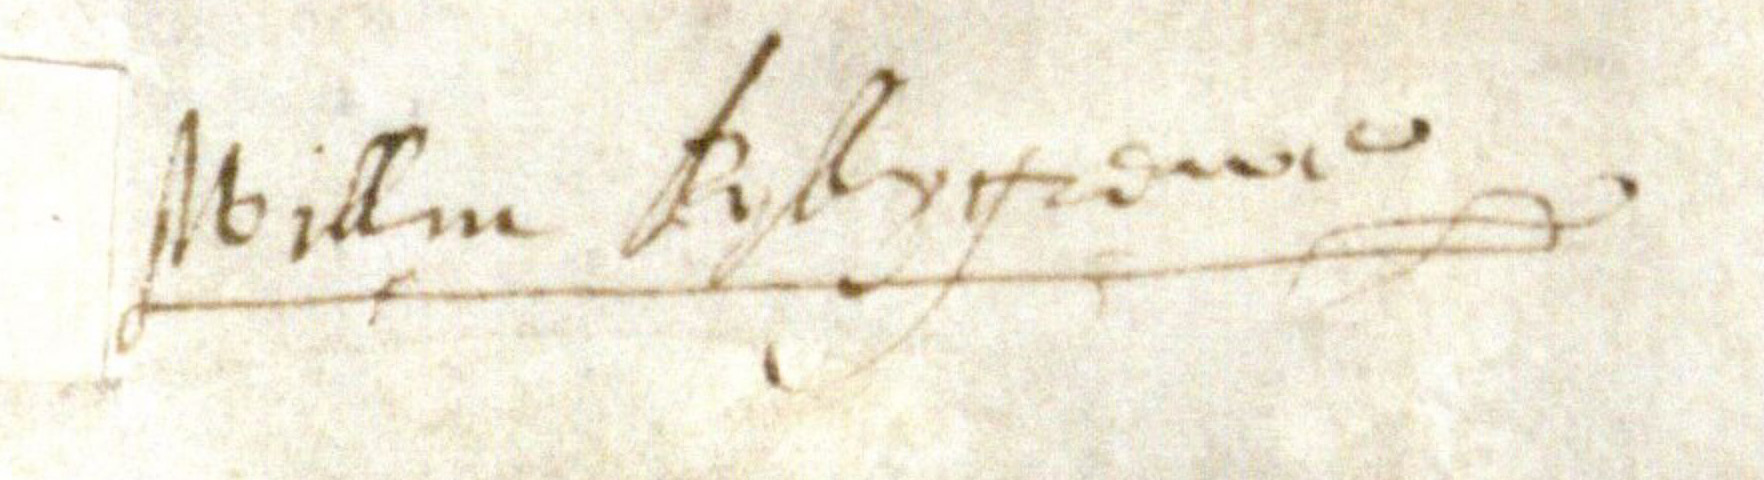 William Killigrew signature detail from 1601 deed of covenant.